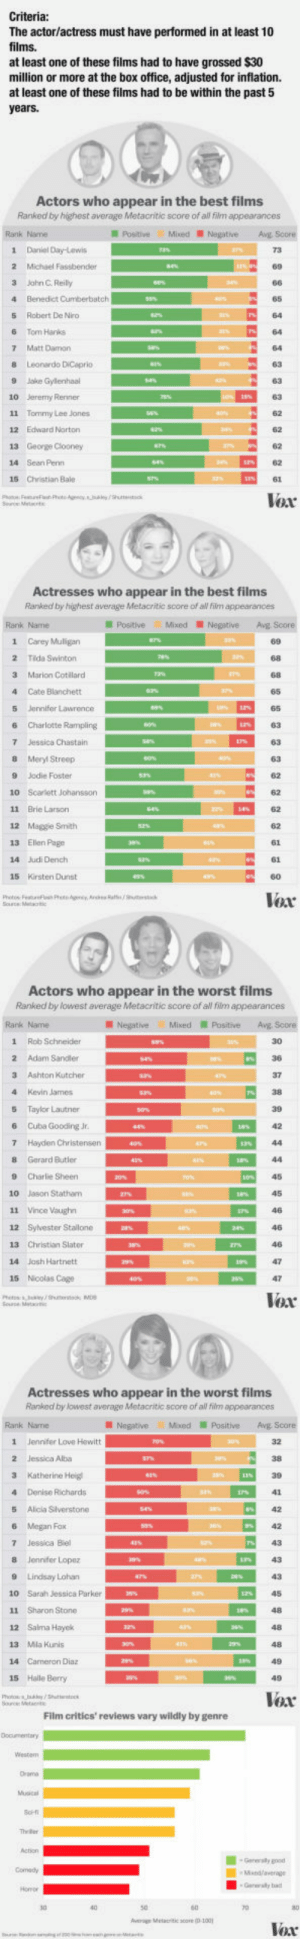 Hollywoods favourite and least favourite: The actor/actress must have performed in at least 10  films.  at least one of these films had to have grossed $30  million or more at the box office, adjusted for inflation.  at least one of these films had to be within the past 5  Actor  s who appear in the best films  Ranked by highest average Metacritic score of all film appearances  Rank Name  PostiveMixed NegativeAg Score  1 Daniel Day-Lewis  2 Michael Fassbender  3 Jahn C Reily  4 Benedict Cunberbatch  5 Robert De Niro  6 Tom Hanks  7 Matt Damon  8 Leonardo DiCeprio  9 Jake Gylenhaal  10 Jeremy Renner  11 Tommy Lee Jones  12 Edward Norton  65  62  14 Sean Penn  15 Christian Bale  Vox  Actresses who appear in the best films  Ranked by highest average Metacritic score of al fiim appearances  PositiveMixedNegative Avg Score  1 Carey Muligan  89  2 Tida Swinton  3 Marion Cotllard  4 Cate Blanchett  5 Jennifer Lawrence  6 Charlotte Rampling  63  8 Meryl Streep  9 Jodie Foster  10 Scarlett Johansson  11 Brie Larson  12 Maggie Smith  13 Ellen Page  14 Judi Dench  15 Kirsten Dunst  62  62  62  62  6  Voar  Actors who appear in the worst films  Ranked by lowest average Metacntic score of al fim appearances  Rank Name  Negative MixedPositive Avg Score  1 Rob Schneider  2 Adam Sandler  3 Ashton Kutcher  4 Kevin James  5 Taylor Lautner  6 Cuba Gooding Jr.  7 Hayden Christensen  8 Gerard Butler  30  9 Charlie Sheen ESI,  45  10 Jason Statham  12 Syvester Stallone  13 Christian Slater  14 Jash Hartnett  15 Nicolas Cage  Vox  Actresses who appear in the worst films  Ranked by lowest average Metacritic score of all film appearances  Rank Name  NegativeMxedPositiveAvE Score  1  Jennifer Love Hewitt  2 Jessica Alba  4 Denise Richards  5 Alica Slverstone  6 Megan Fox  7 Jessica Biel  8 Jennifer Lopez  9 Lindsay Lohan  10 Sarah Jessica Parker  11 Sharon Stone  12 Salma Hayck  13 Mla Kunis  14 Cameron Diaz  15 Halle Berry  43  48  48  Voar  Film critics' reviews vary wildly by genre  Generaly b  verage Melacritic save (D-100 Hollywoods favourite and least favourite